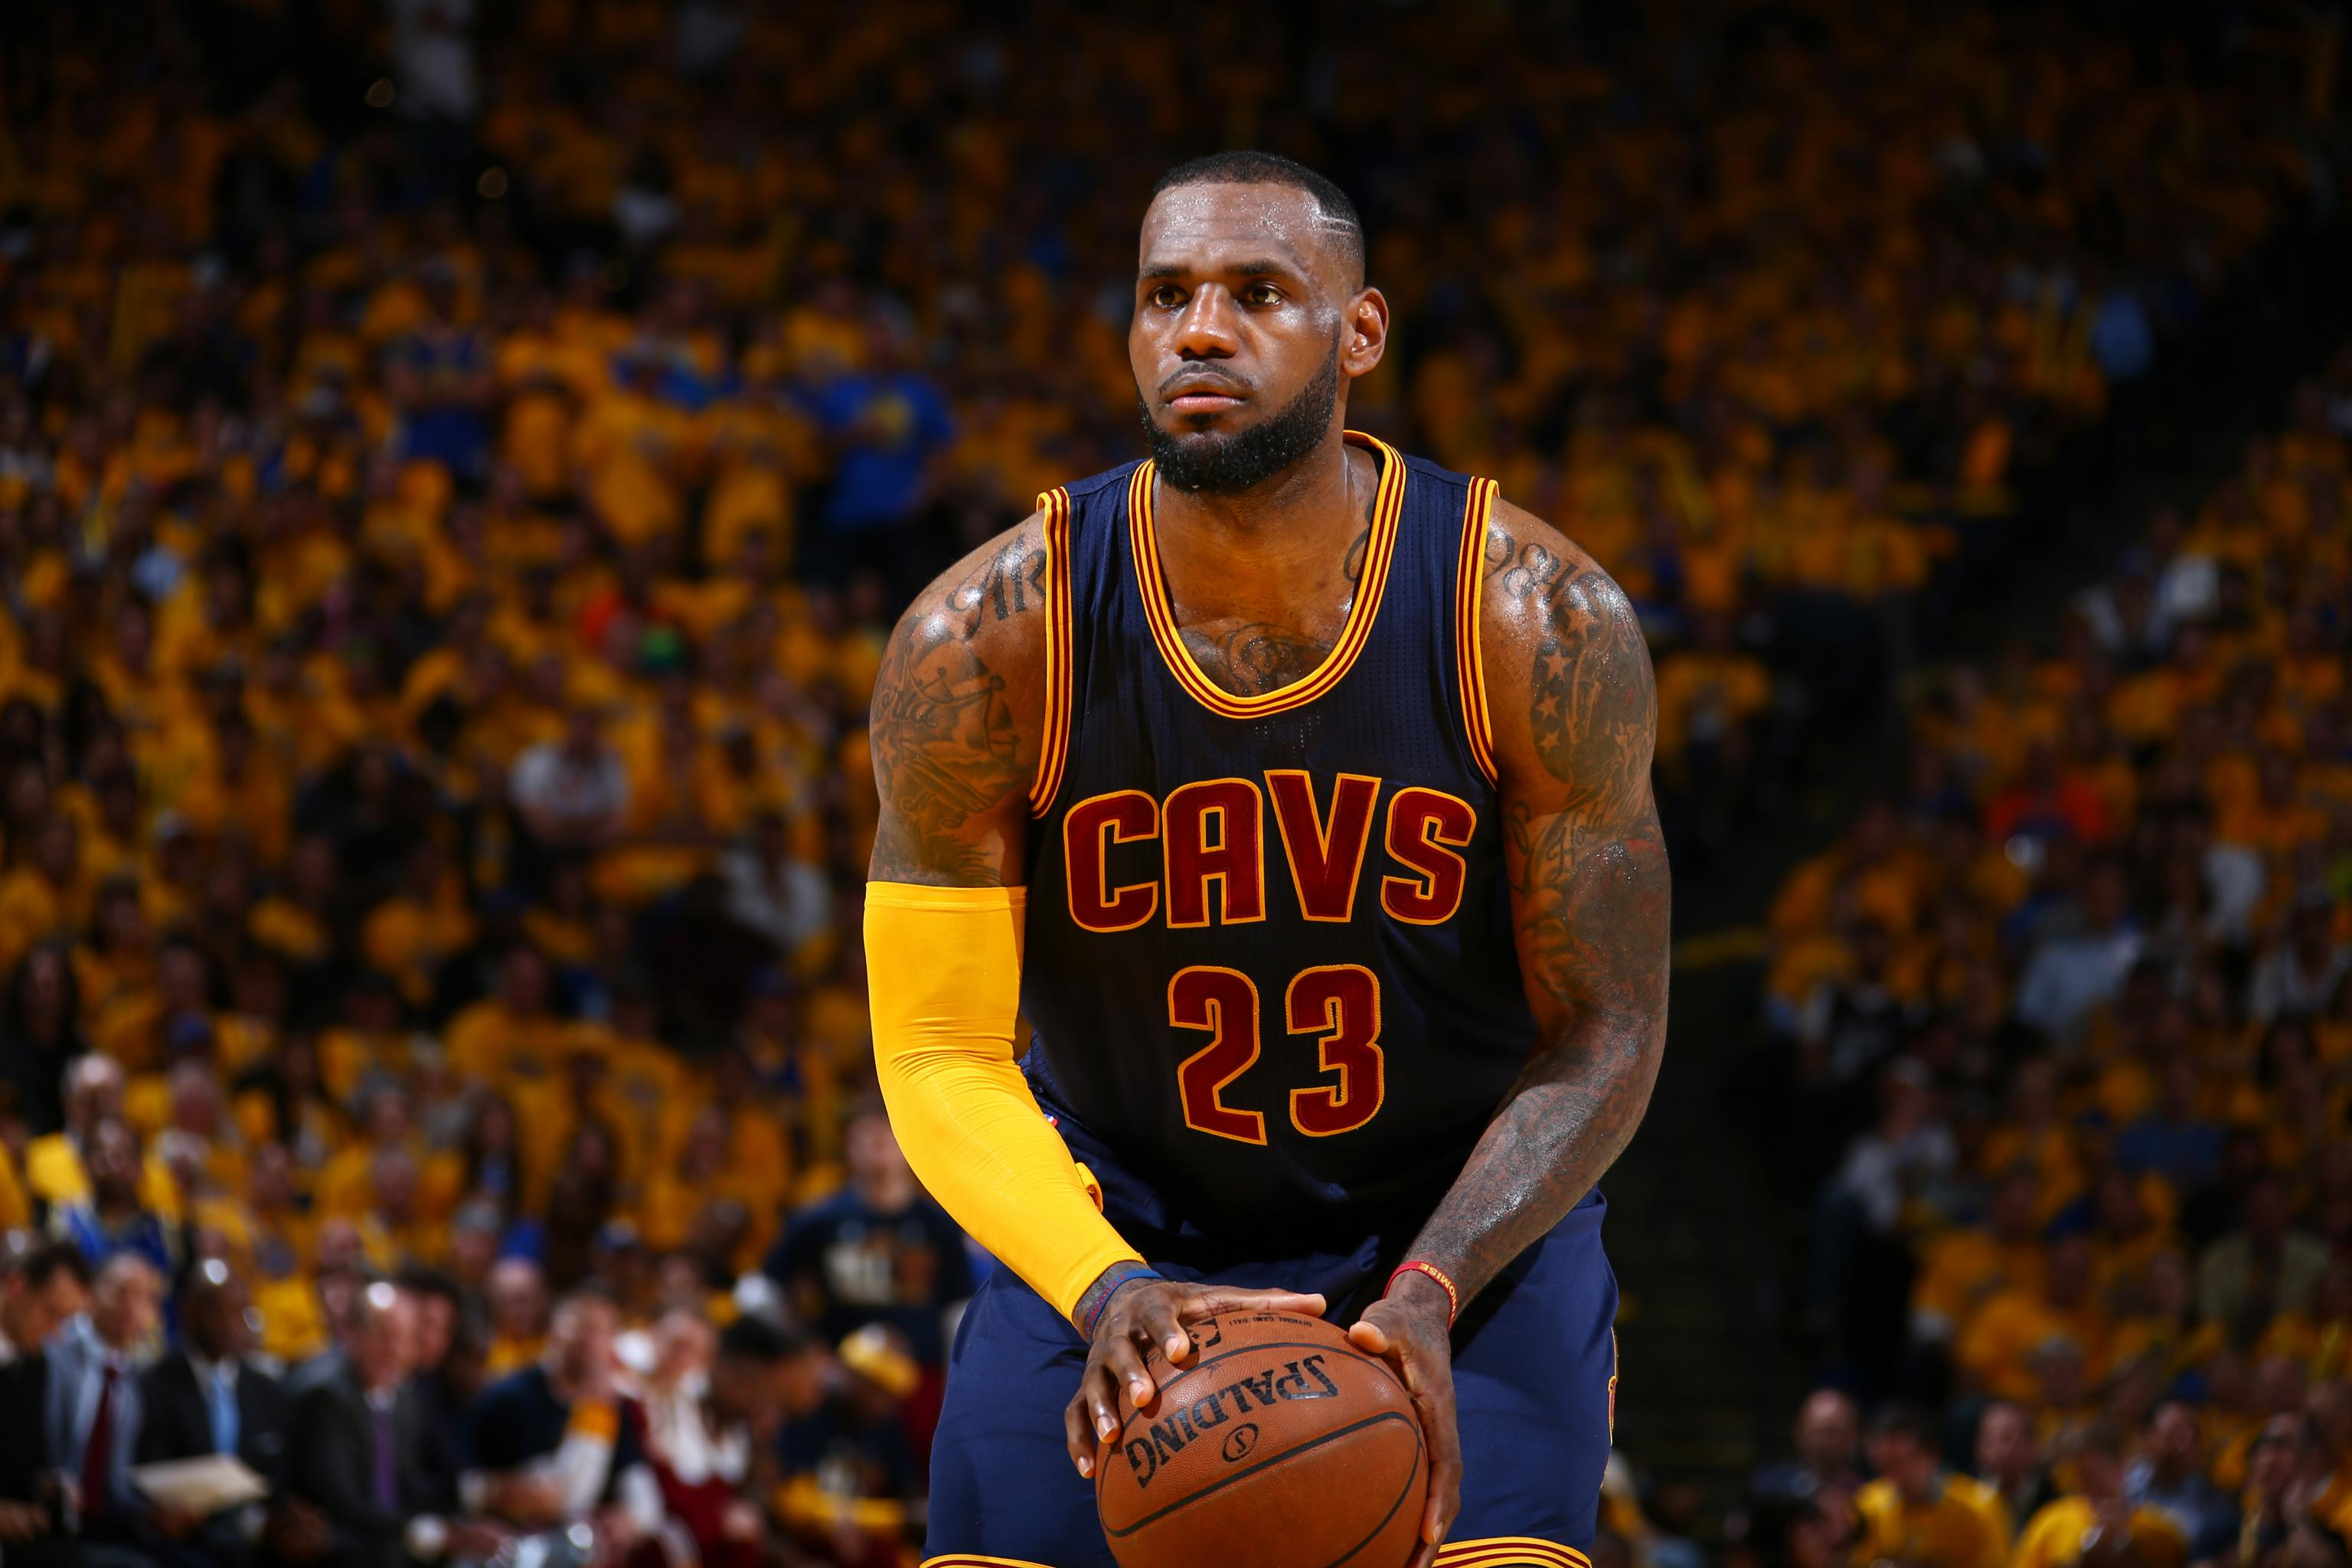 James Sets Personal Mark For Most Points In Nba Finals Game Bleacher Report Latest News Videos And Highlights